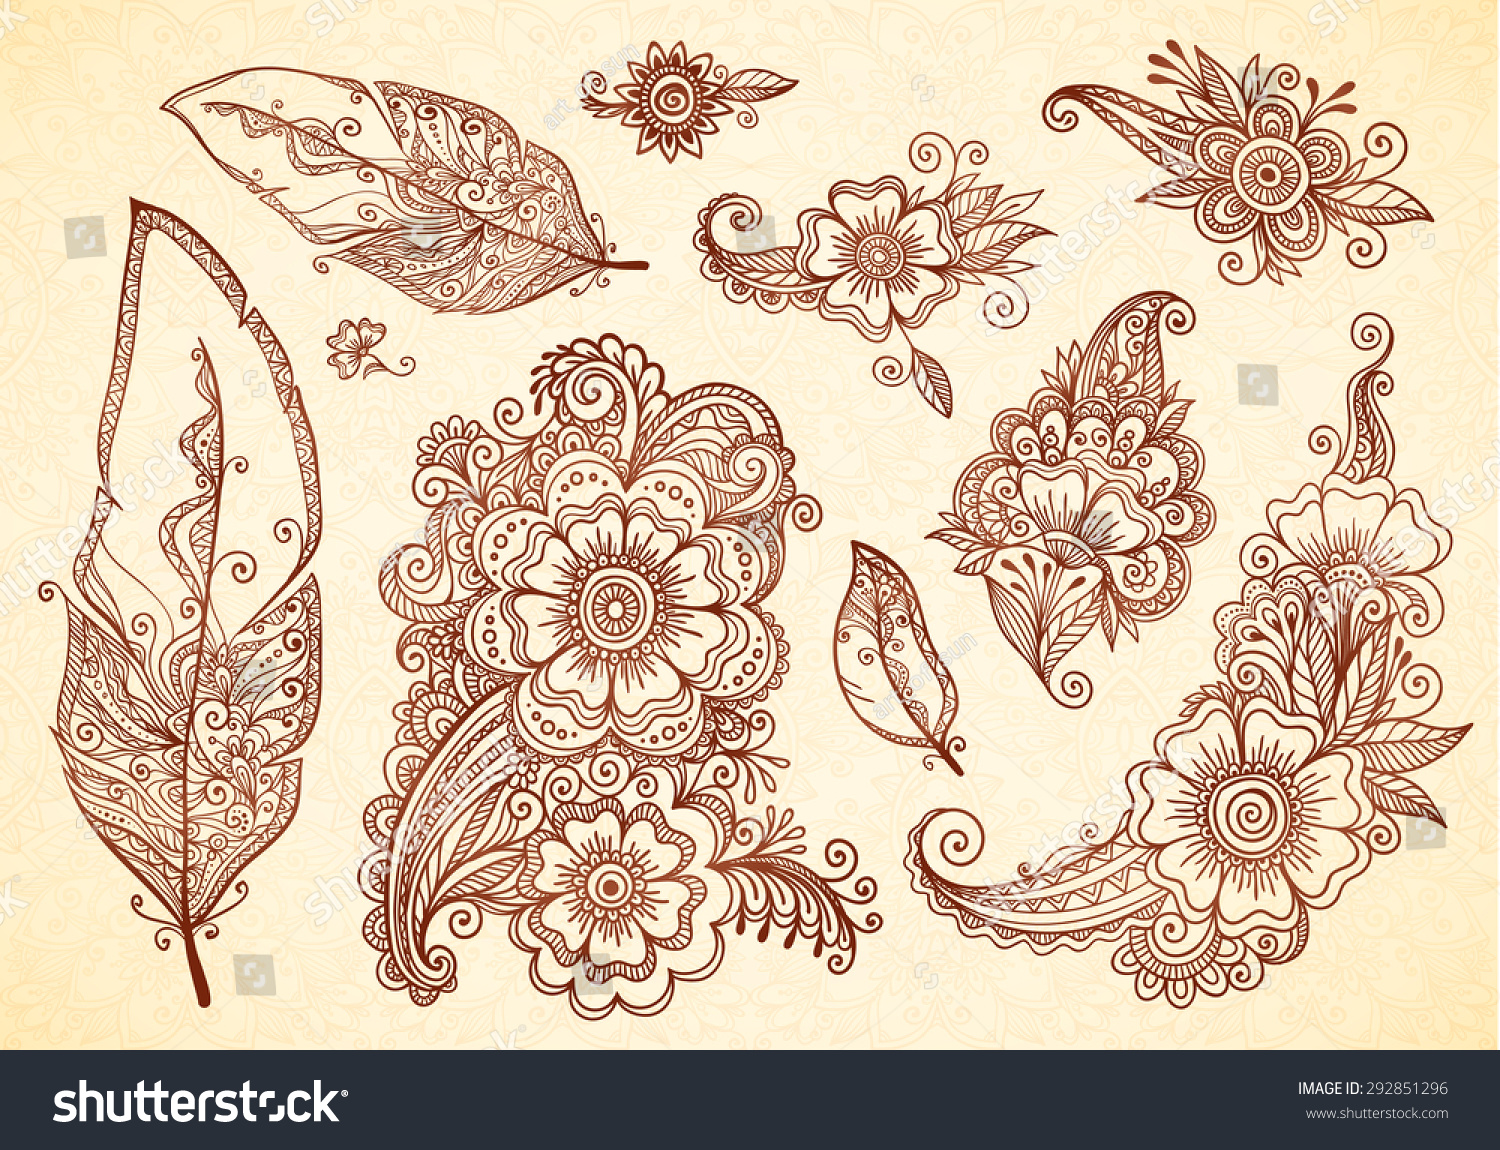 Feather Henna Tattoo Designs: Flowers Feathers Henna Tattoo Vector Designs Stock Vector